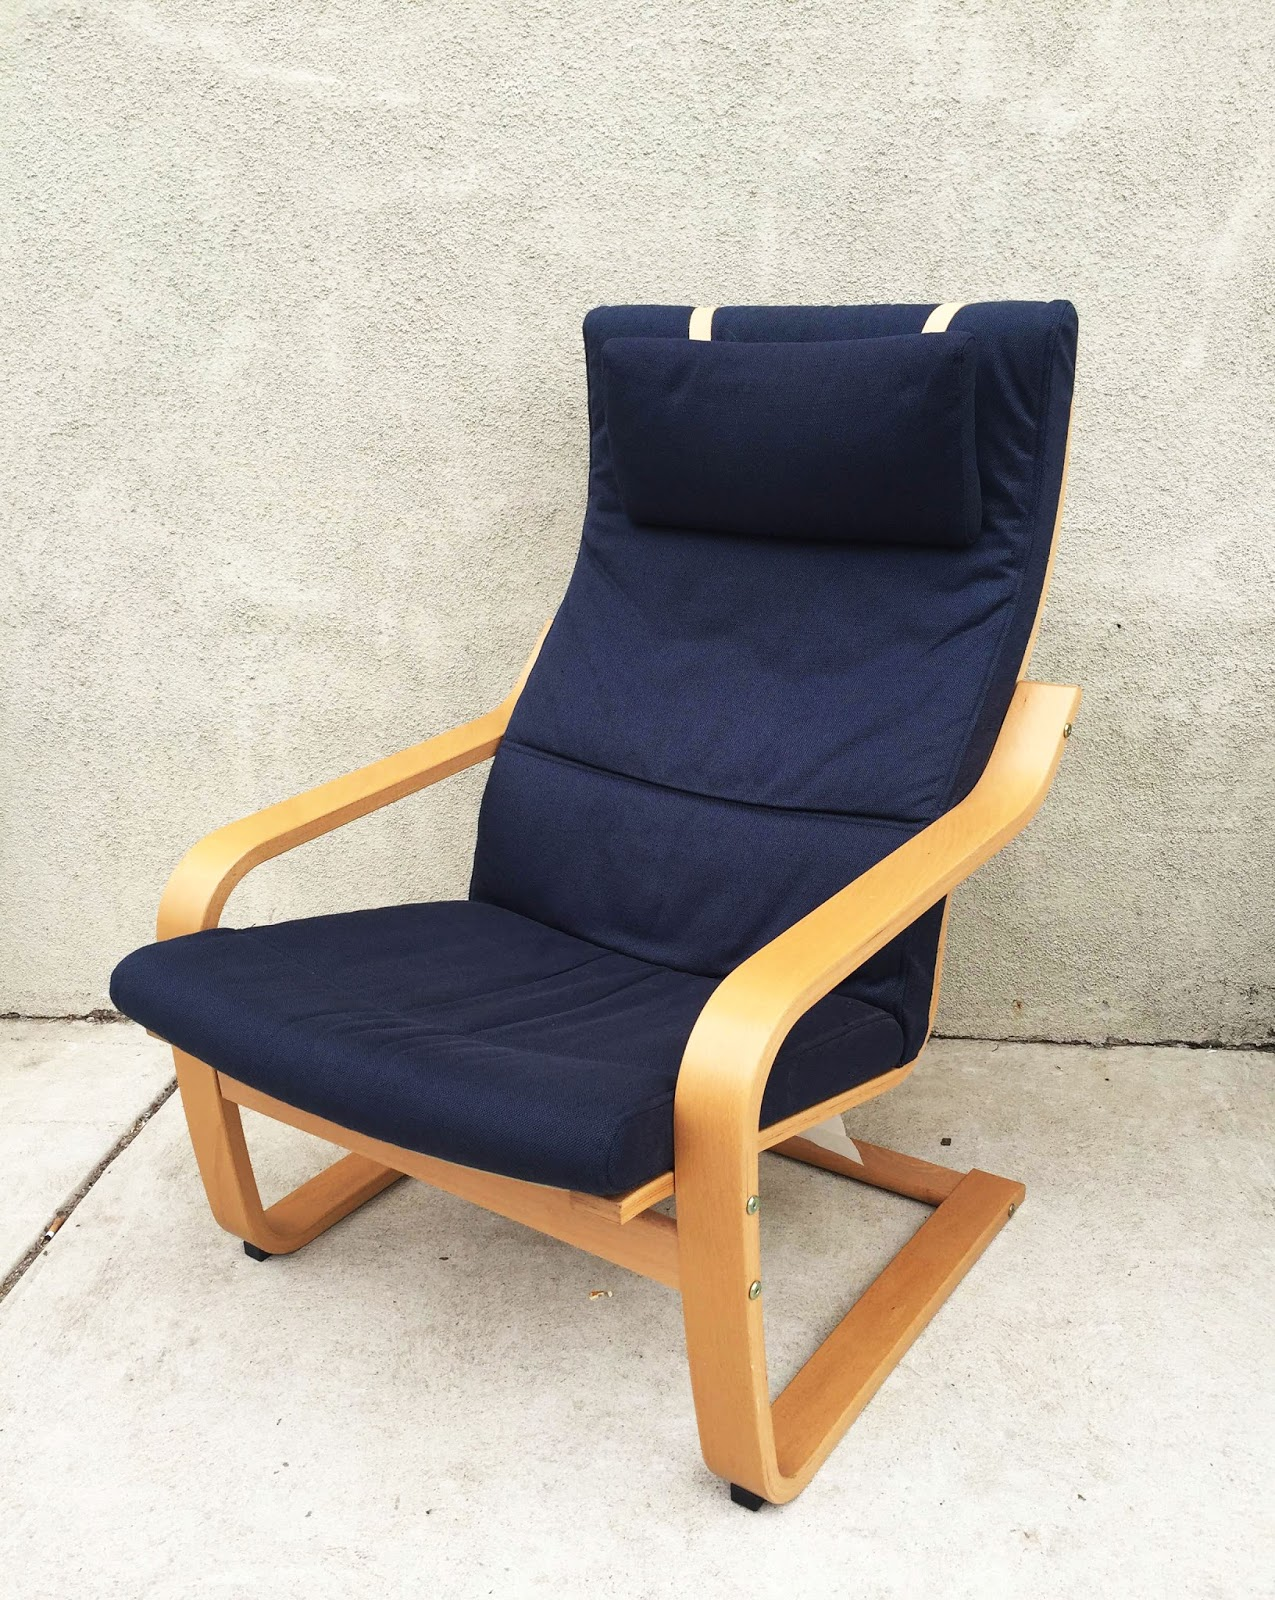 Uhuru furniture collectibles ikea lounge chair 65 sold for Ikea club chair